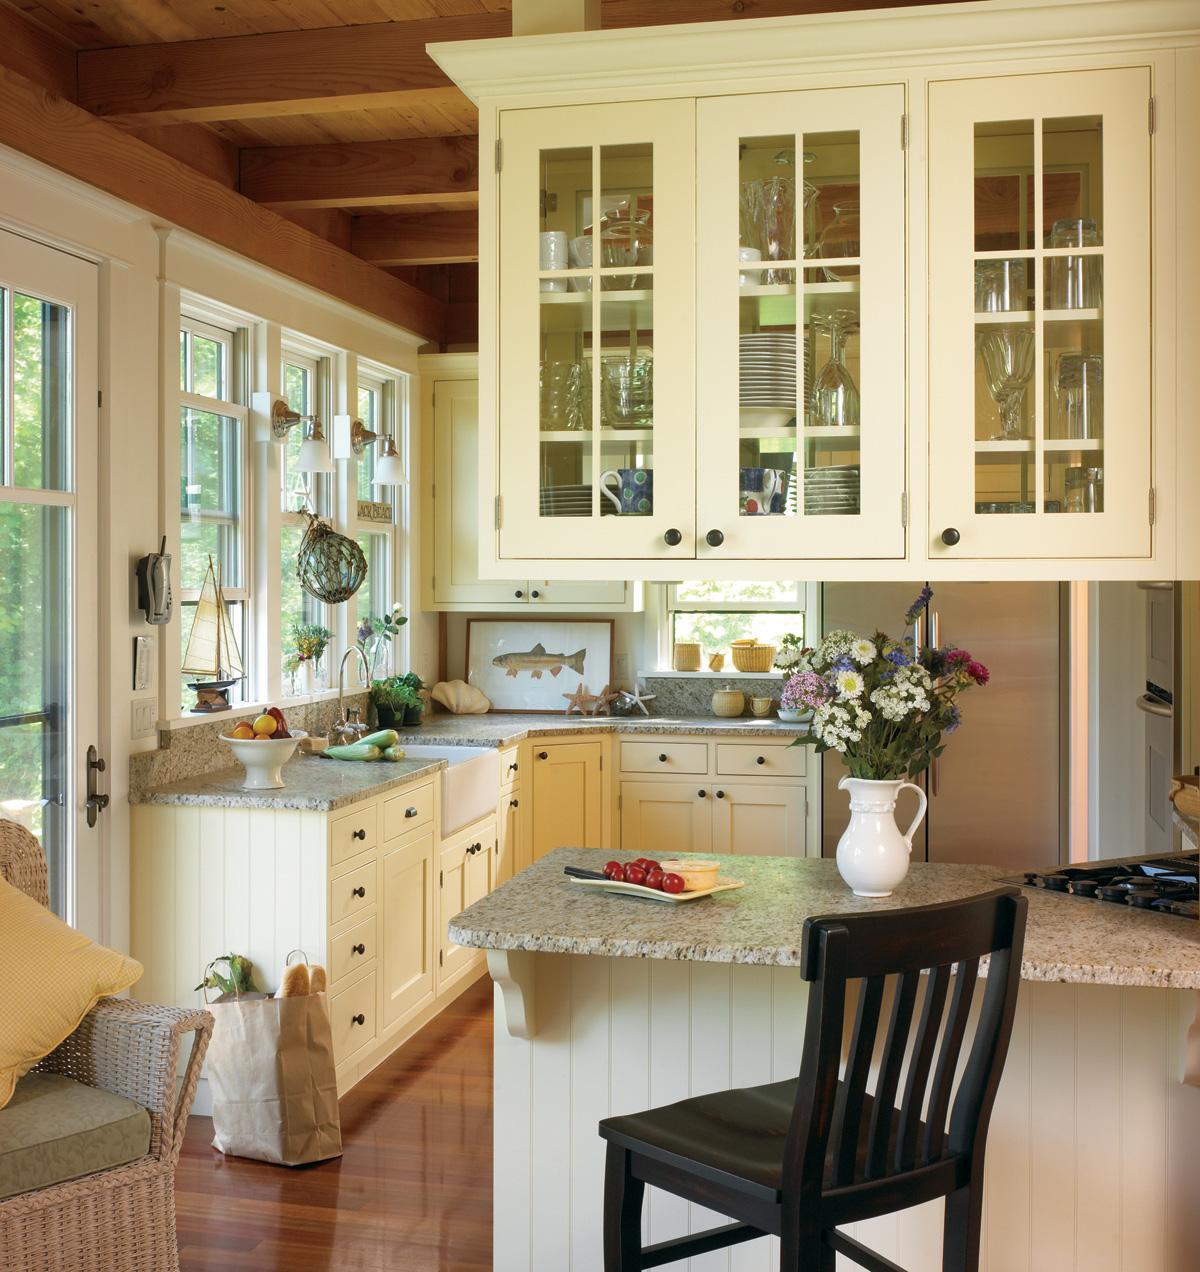 Gorgeous traditional american kitchen remodel 3104 for American kitchen designs